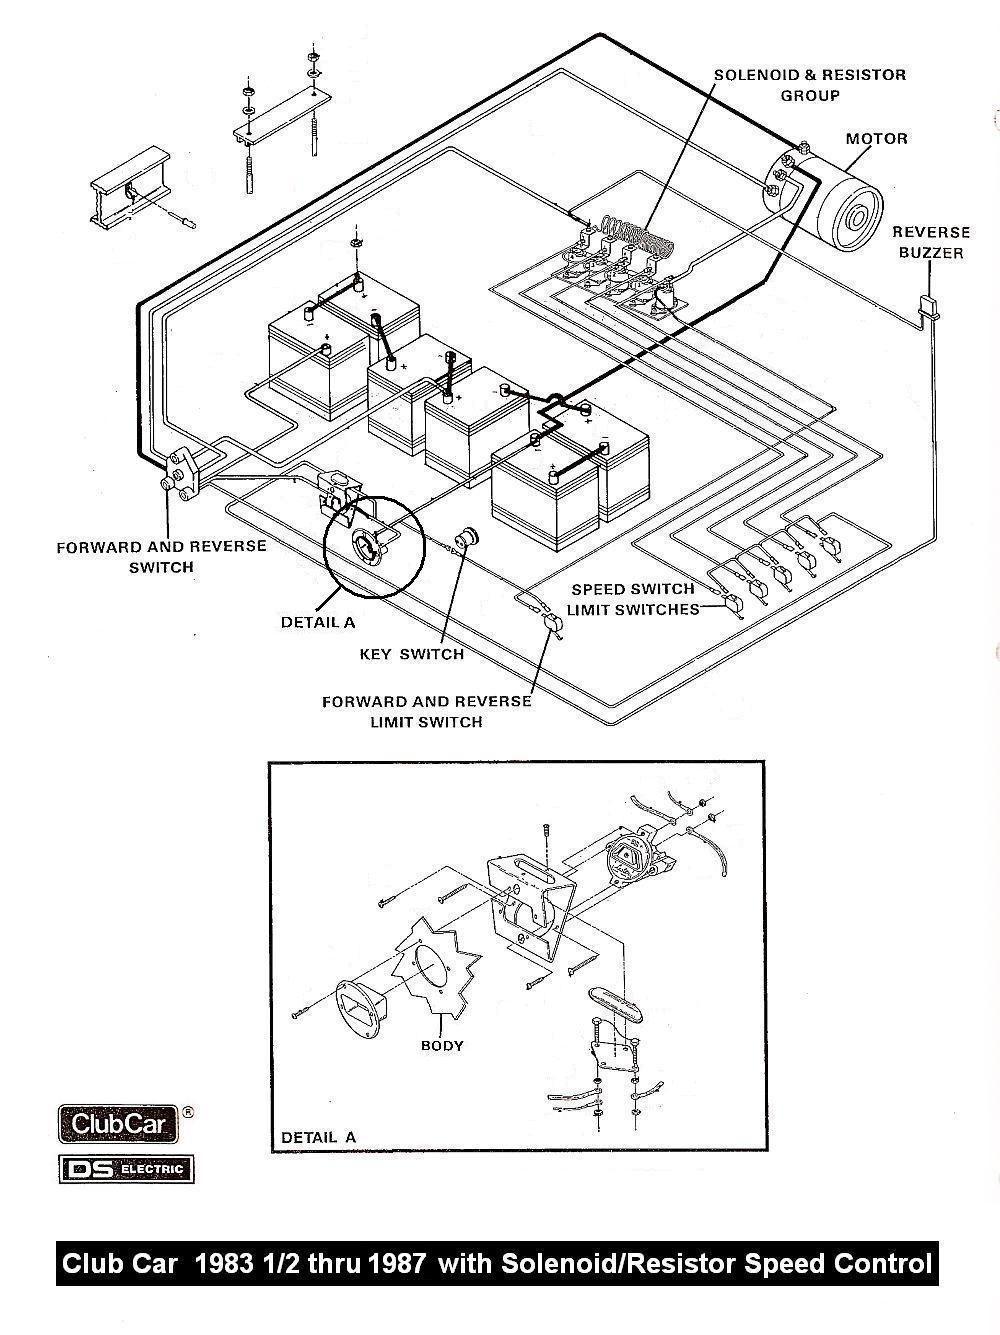 0e8d045370be7682b159825224221faa vintagegolfcartparts com *freezer & crock pot* pinterest sd-trk wiring diagram at mifinder.co